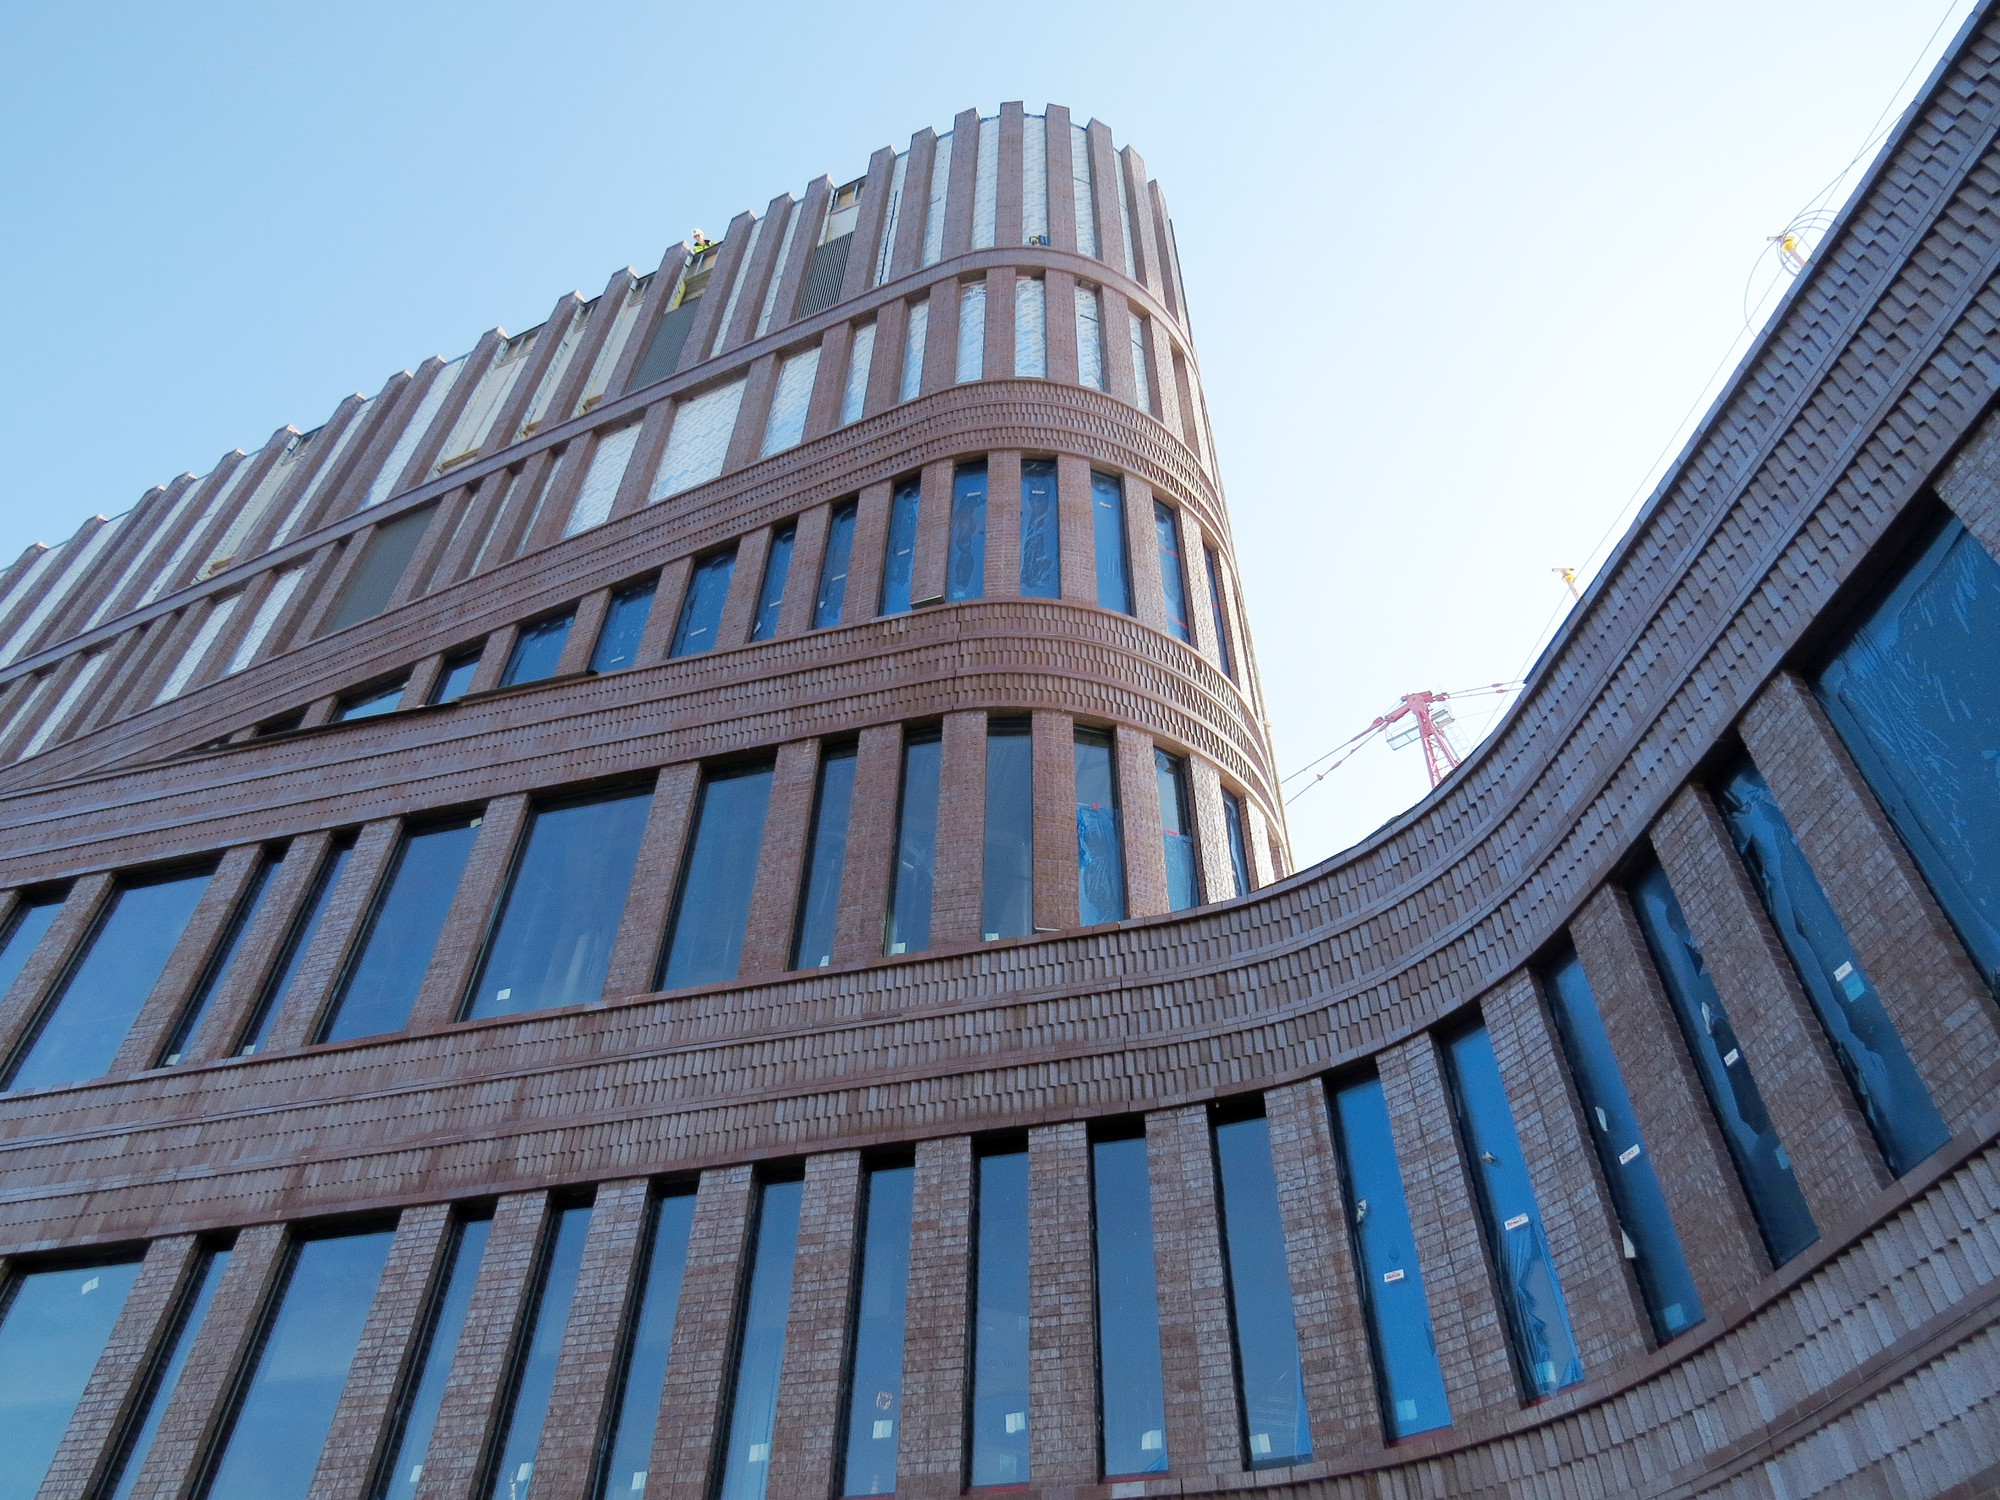 VIDEO: In Boston, Reclaiming the Craft of Brick, Courtesy of MECANOO